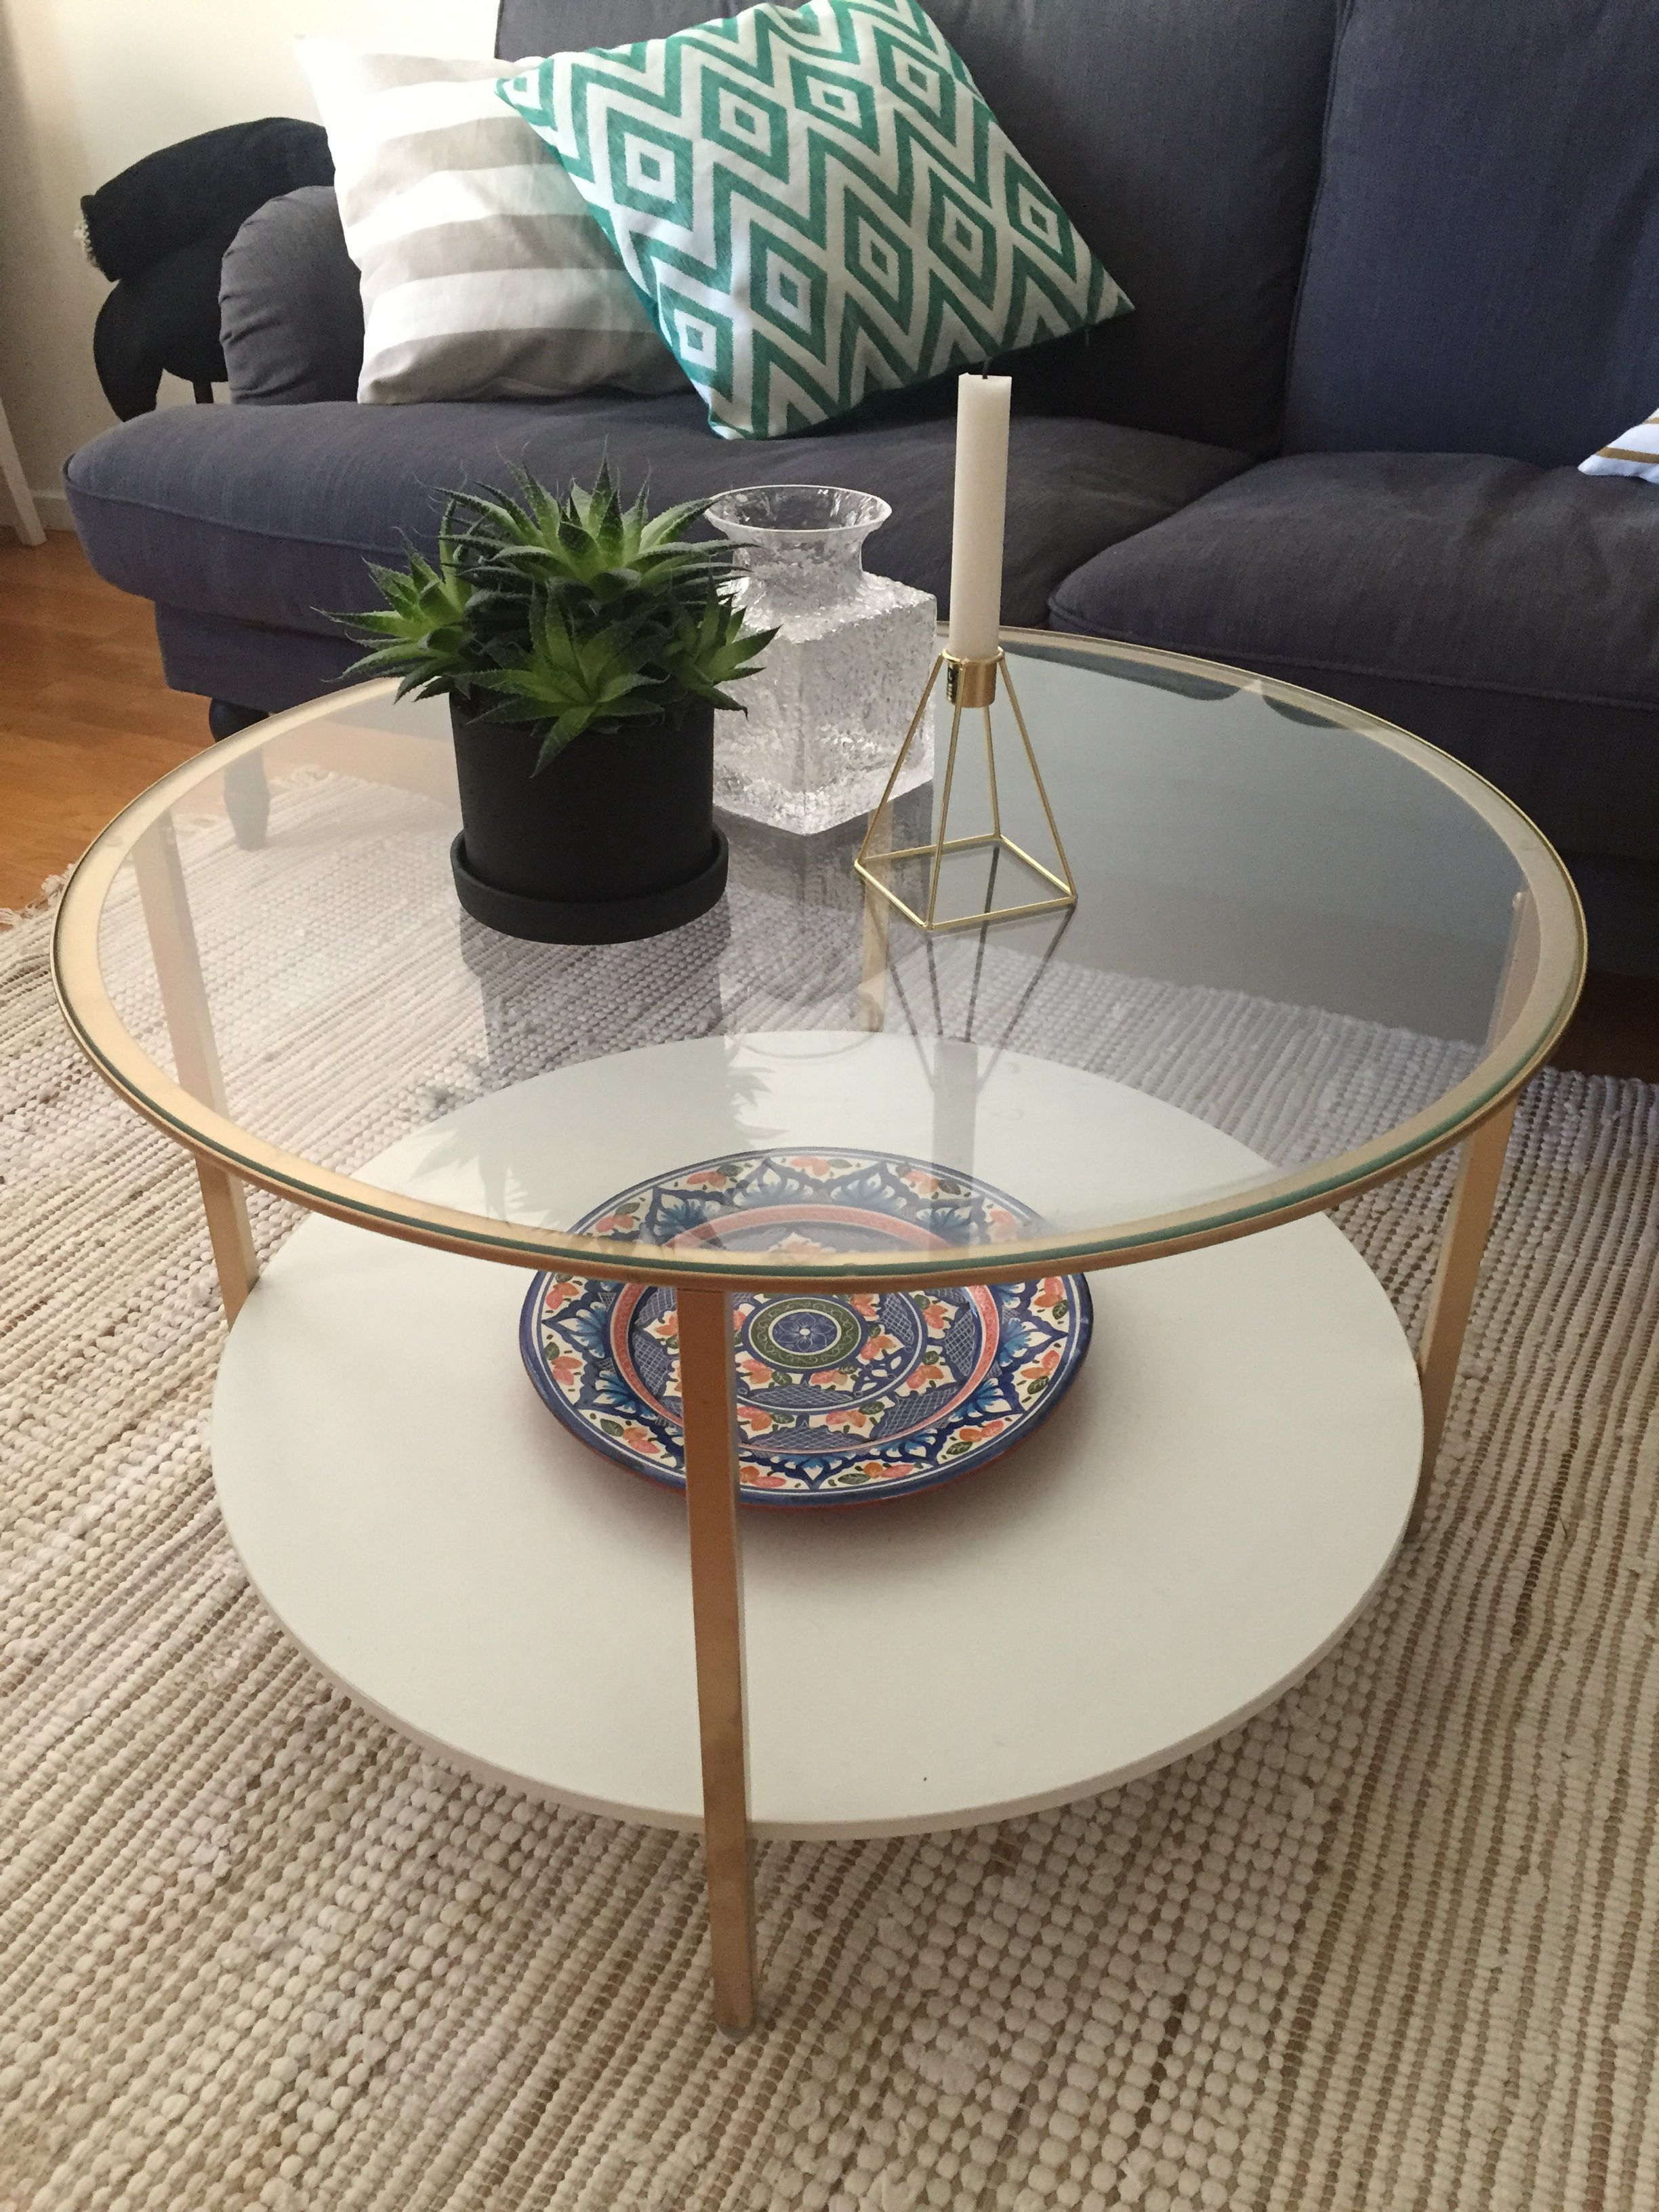 Vittsjo Round Coffee Table Hack Collection A04c413dbd28a B9aa97 2448 3264 Round Coffee Tables In 2020 Round Glass Coffee Table Ikea Coffee Table Coffee Table [ 3264 x 2448 Pixel ]